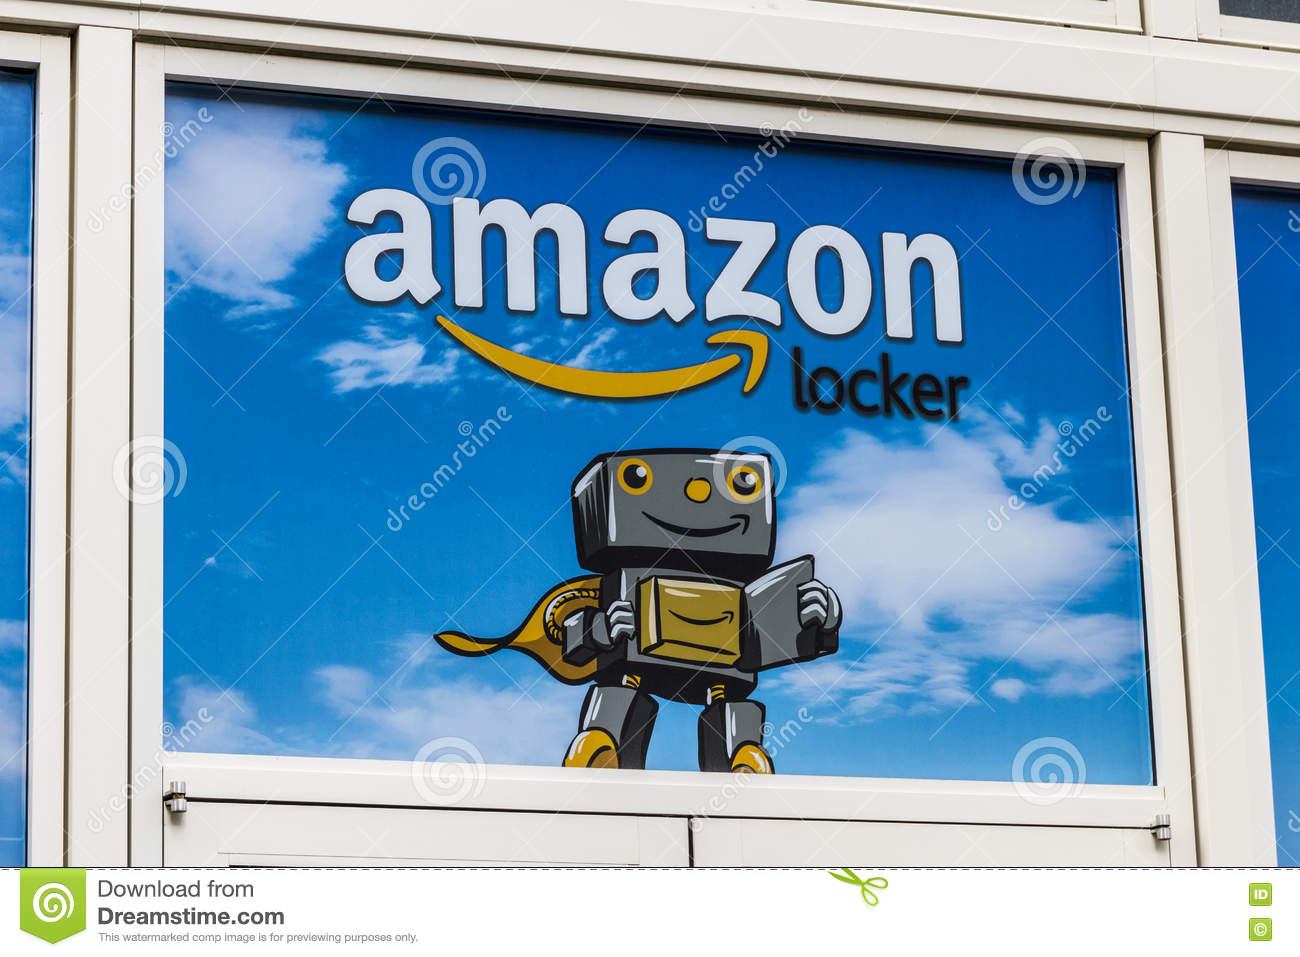 9a441e935 Amazon Locker Location. Amazon Locker is a self-service parcel delivery  service offered by Amazon.com V